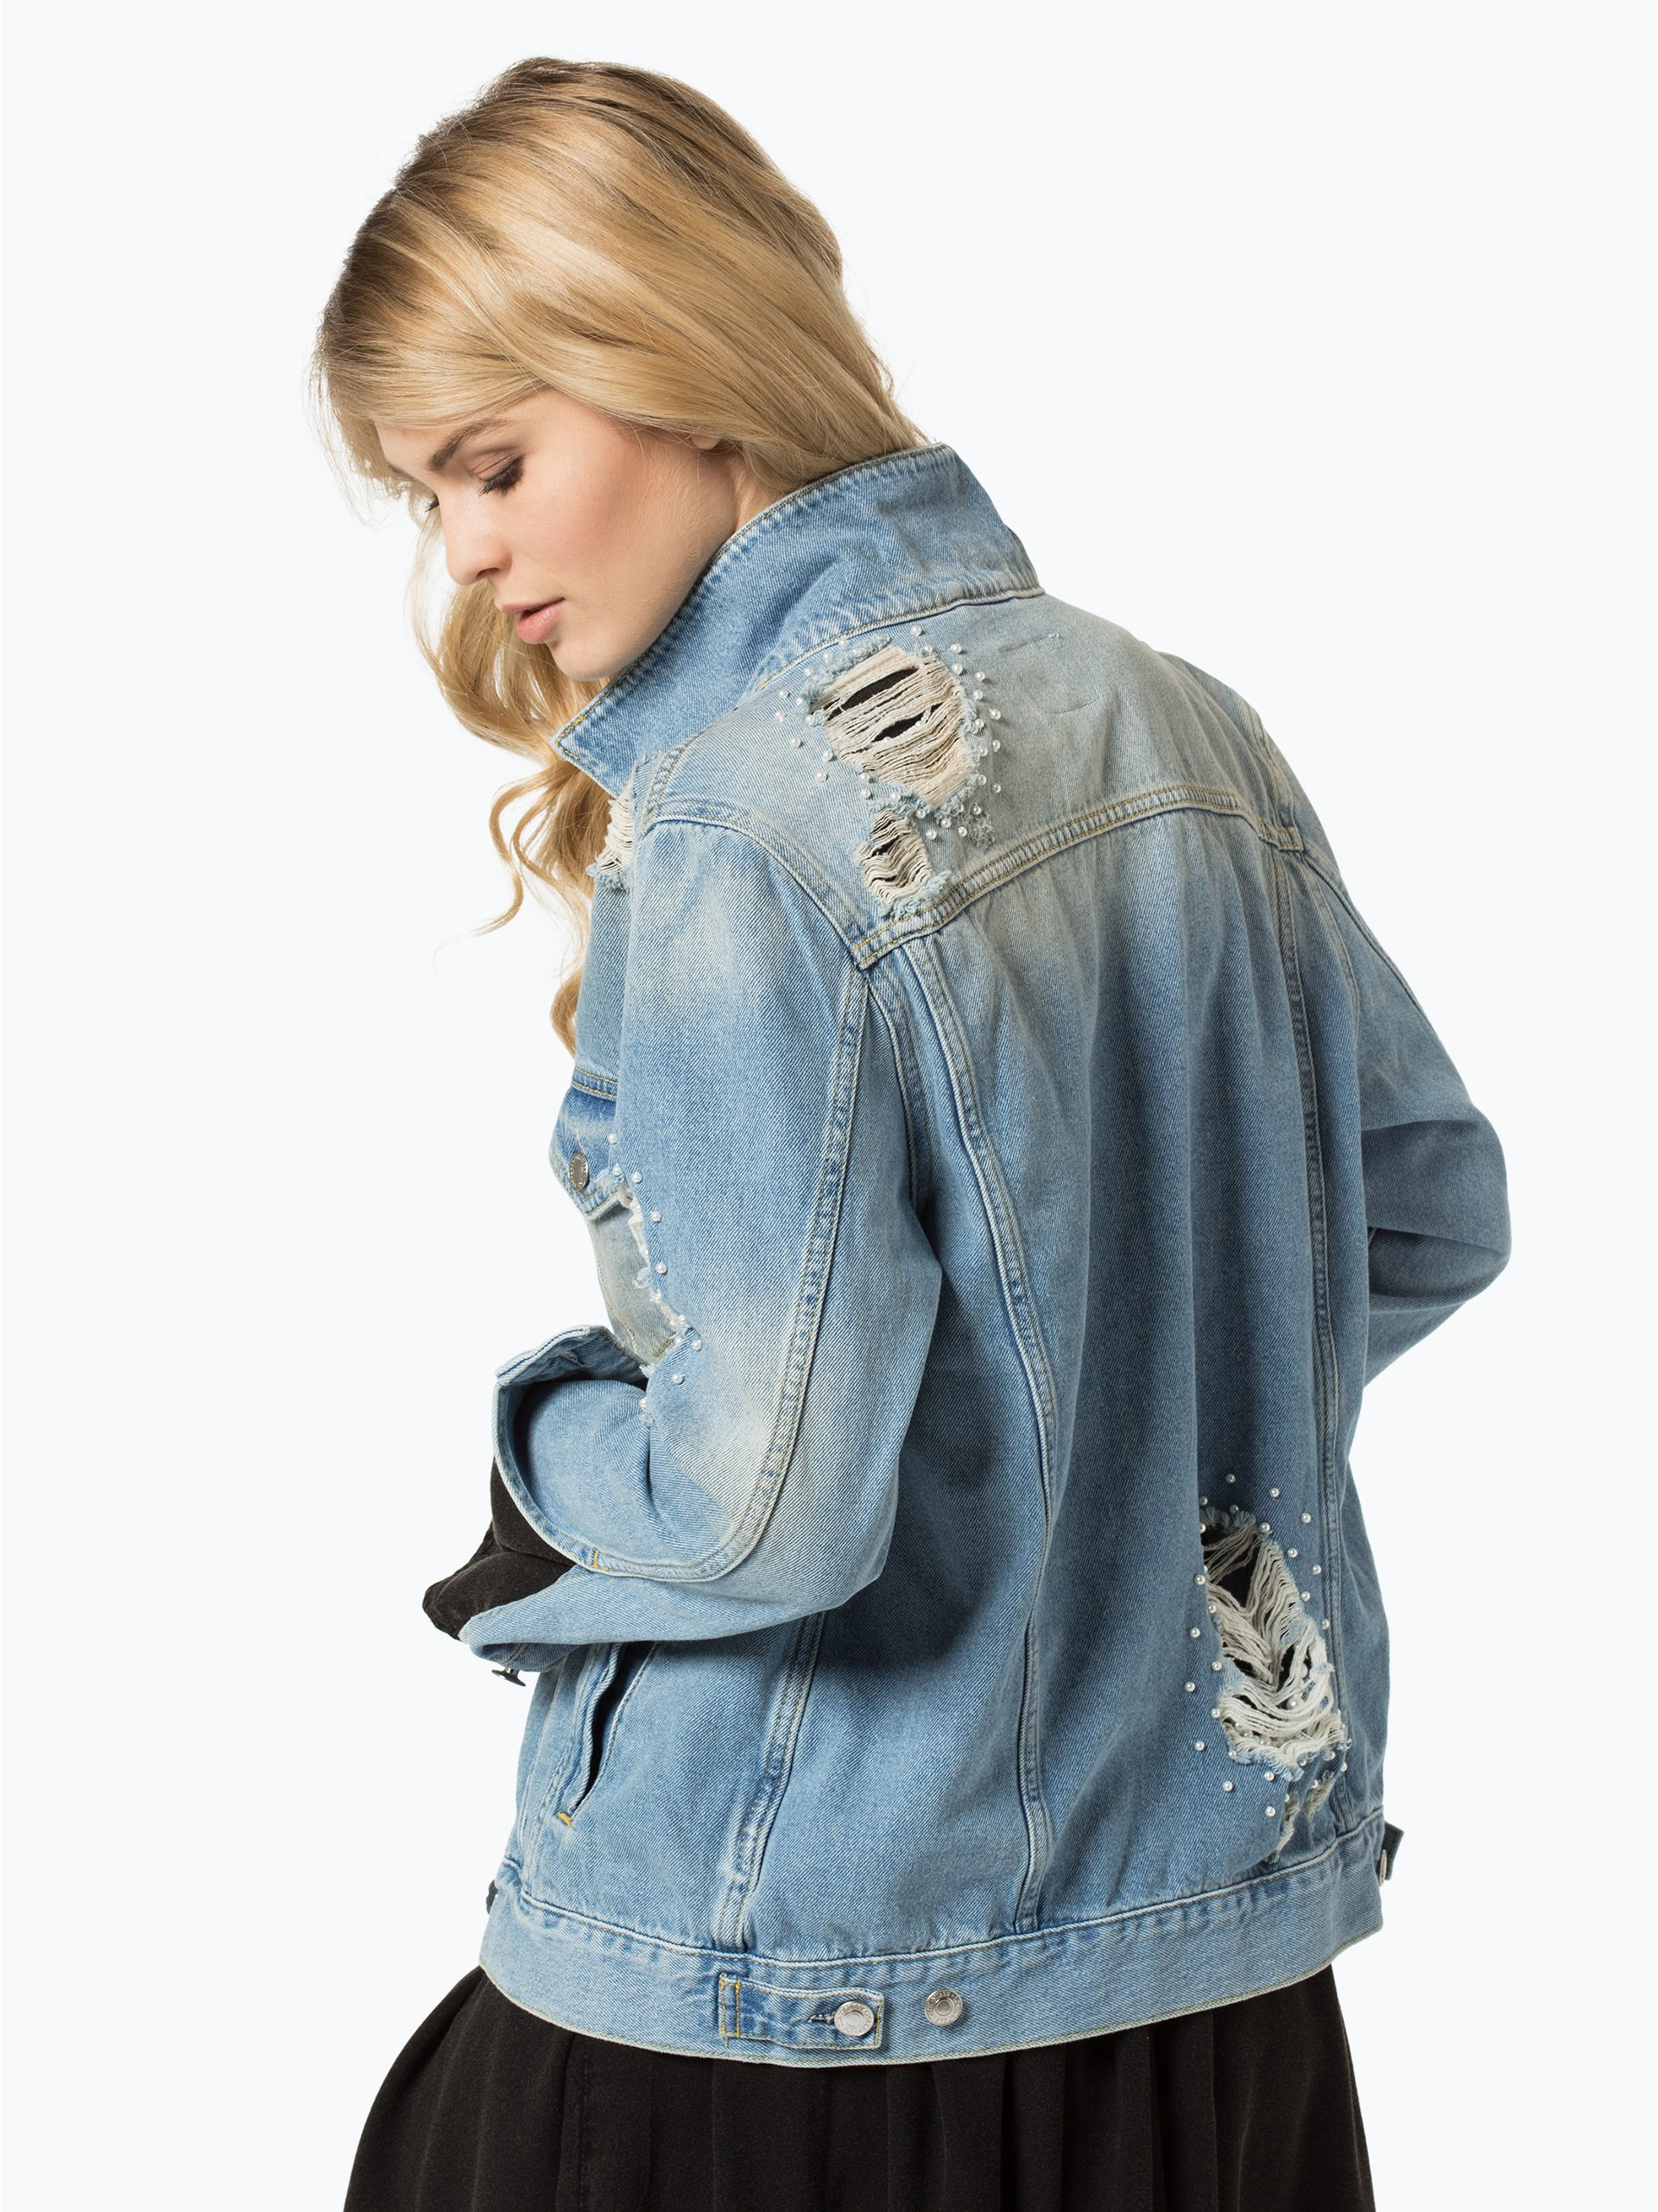 guess jeans damen jeansjacke hellblau uni online kaufen vangraaf com. Black Bedroom Furniture Sets. Home Design Ideas